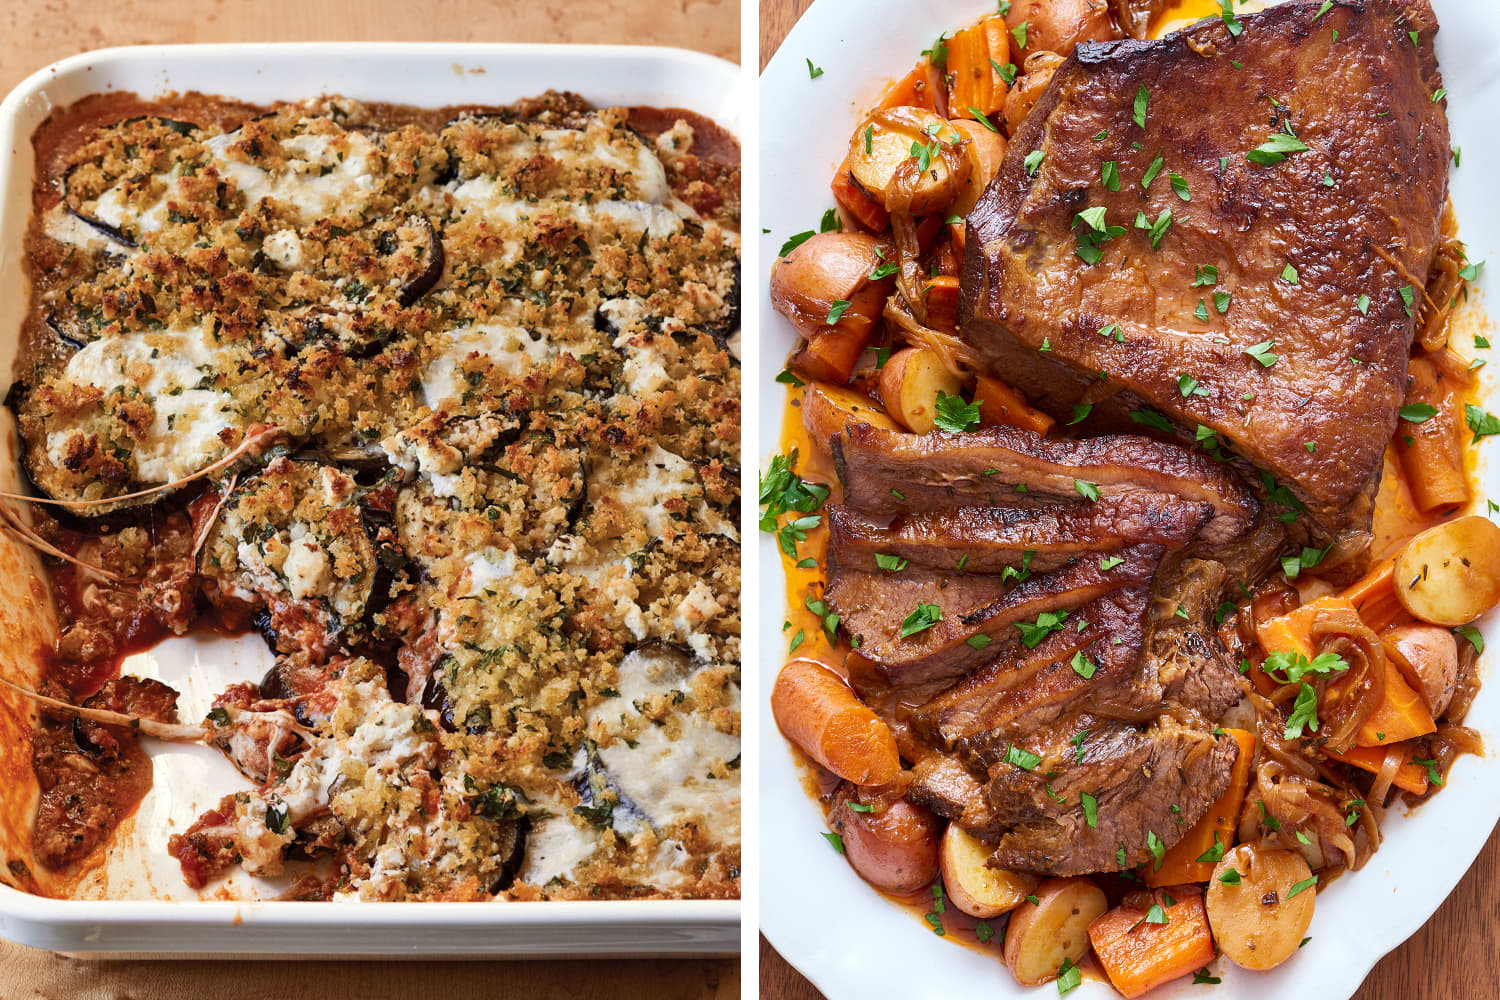 Two Sample Menus for Your Final Cooking School Assignment